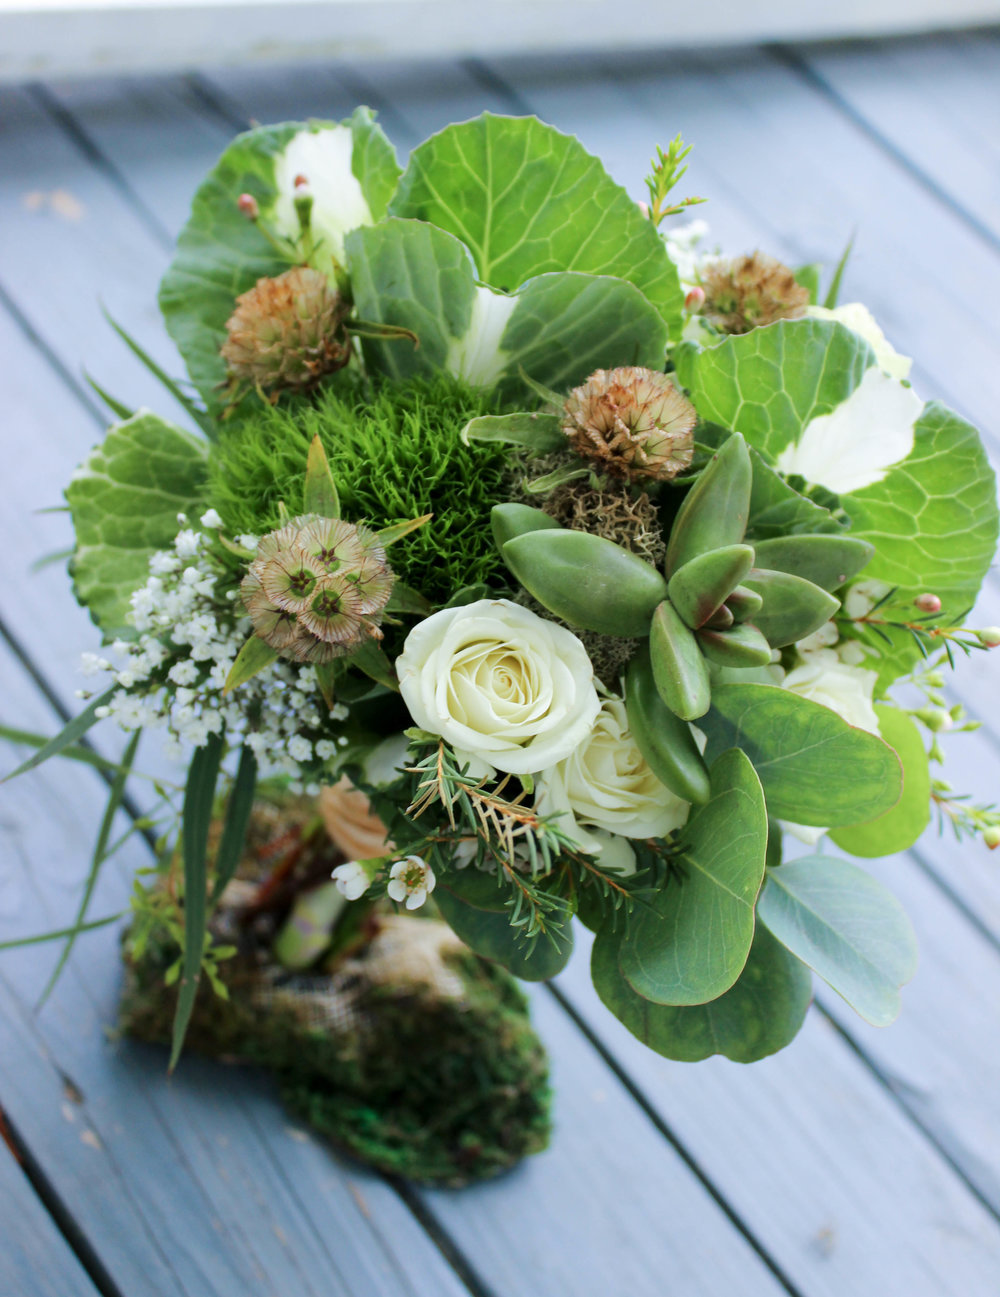 Tiny ivory spray roses are nestled in the kale and eucalyptus foliage for the junior bridesmaid.